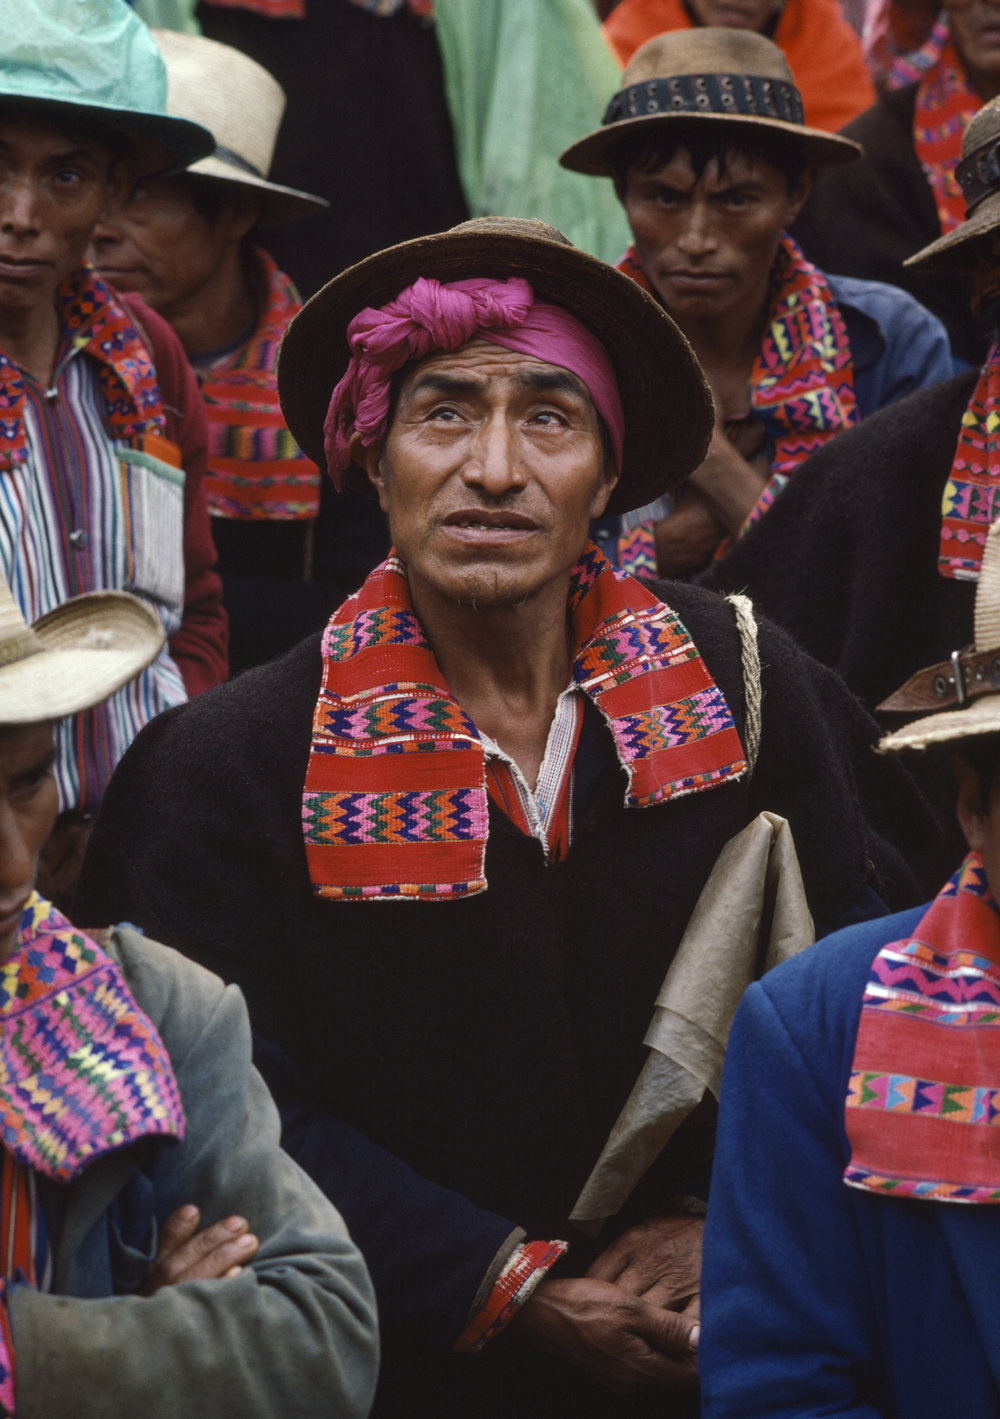 Local civil defense forces hold a meeting in the village square in Todos Santos, Guatemala on September 1, 1982.